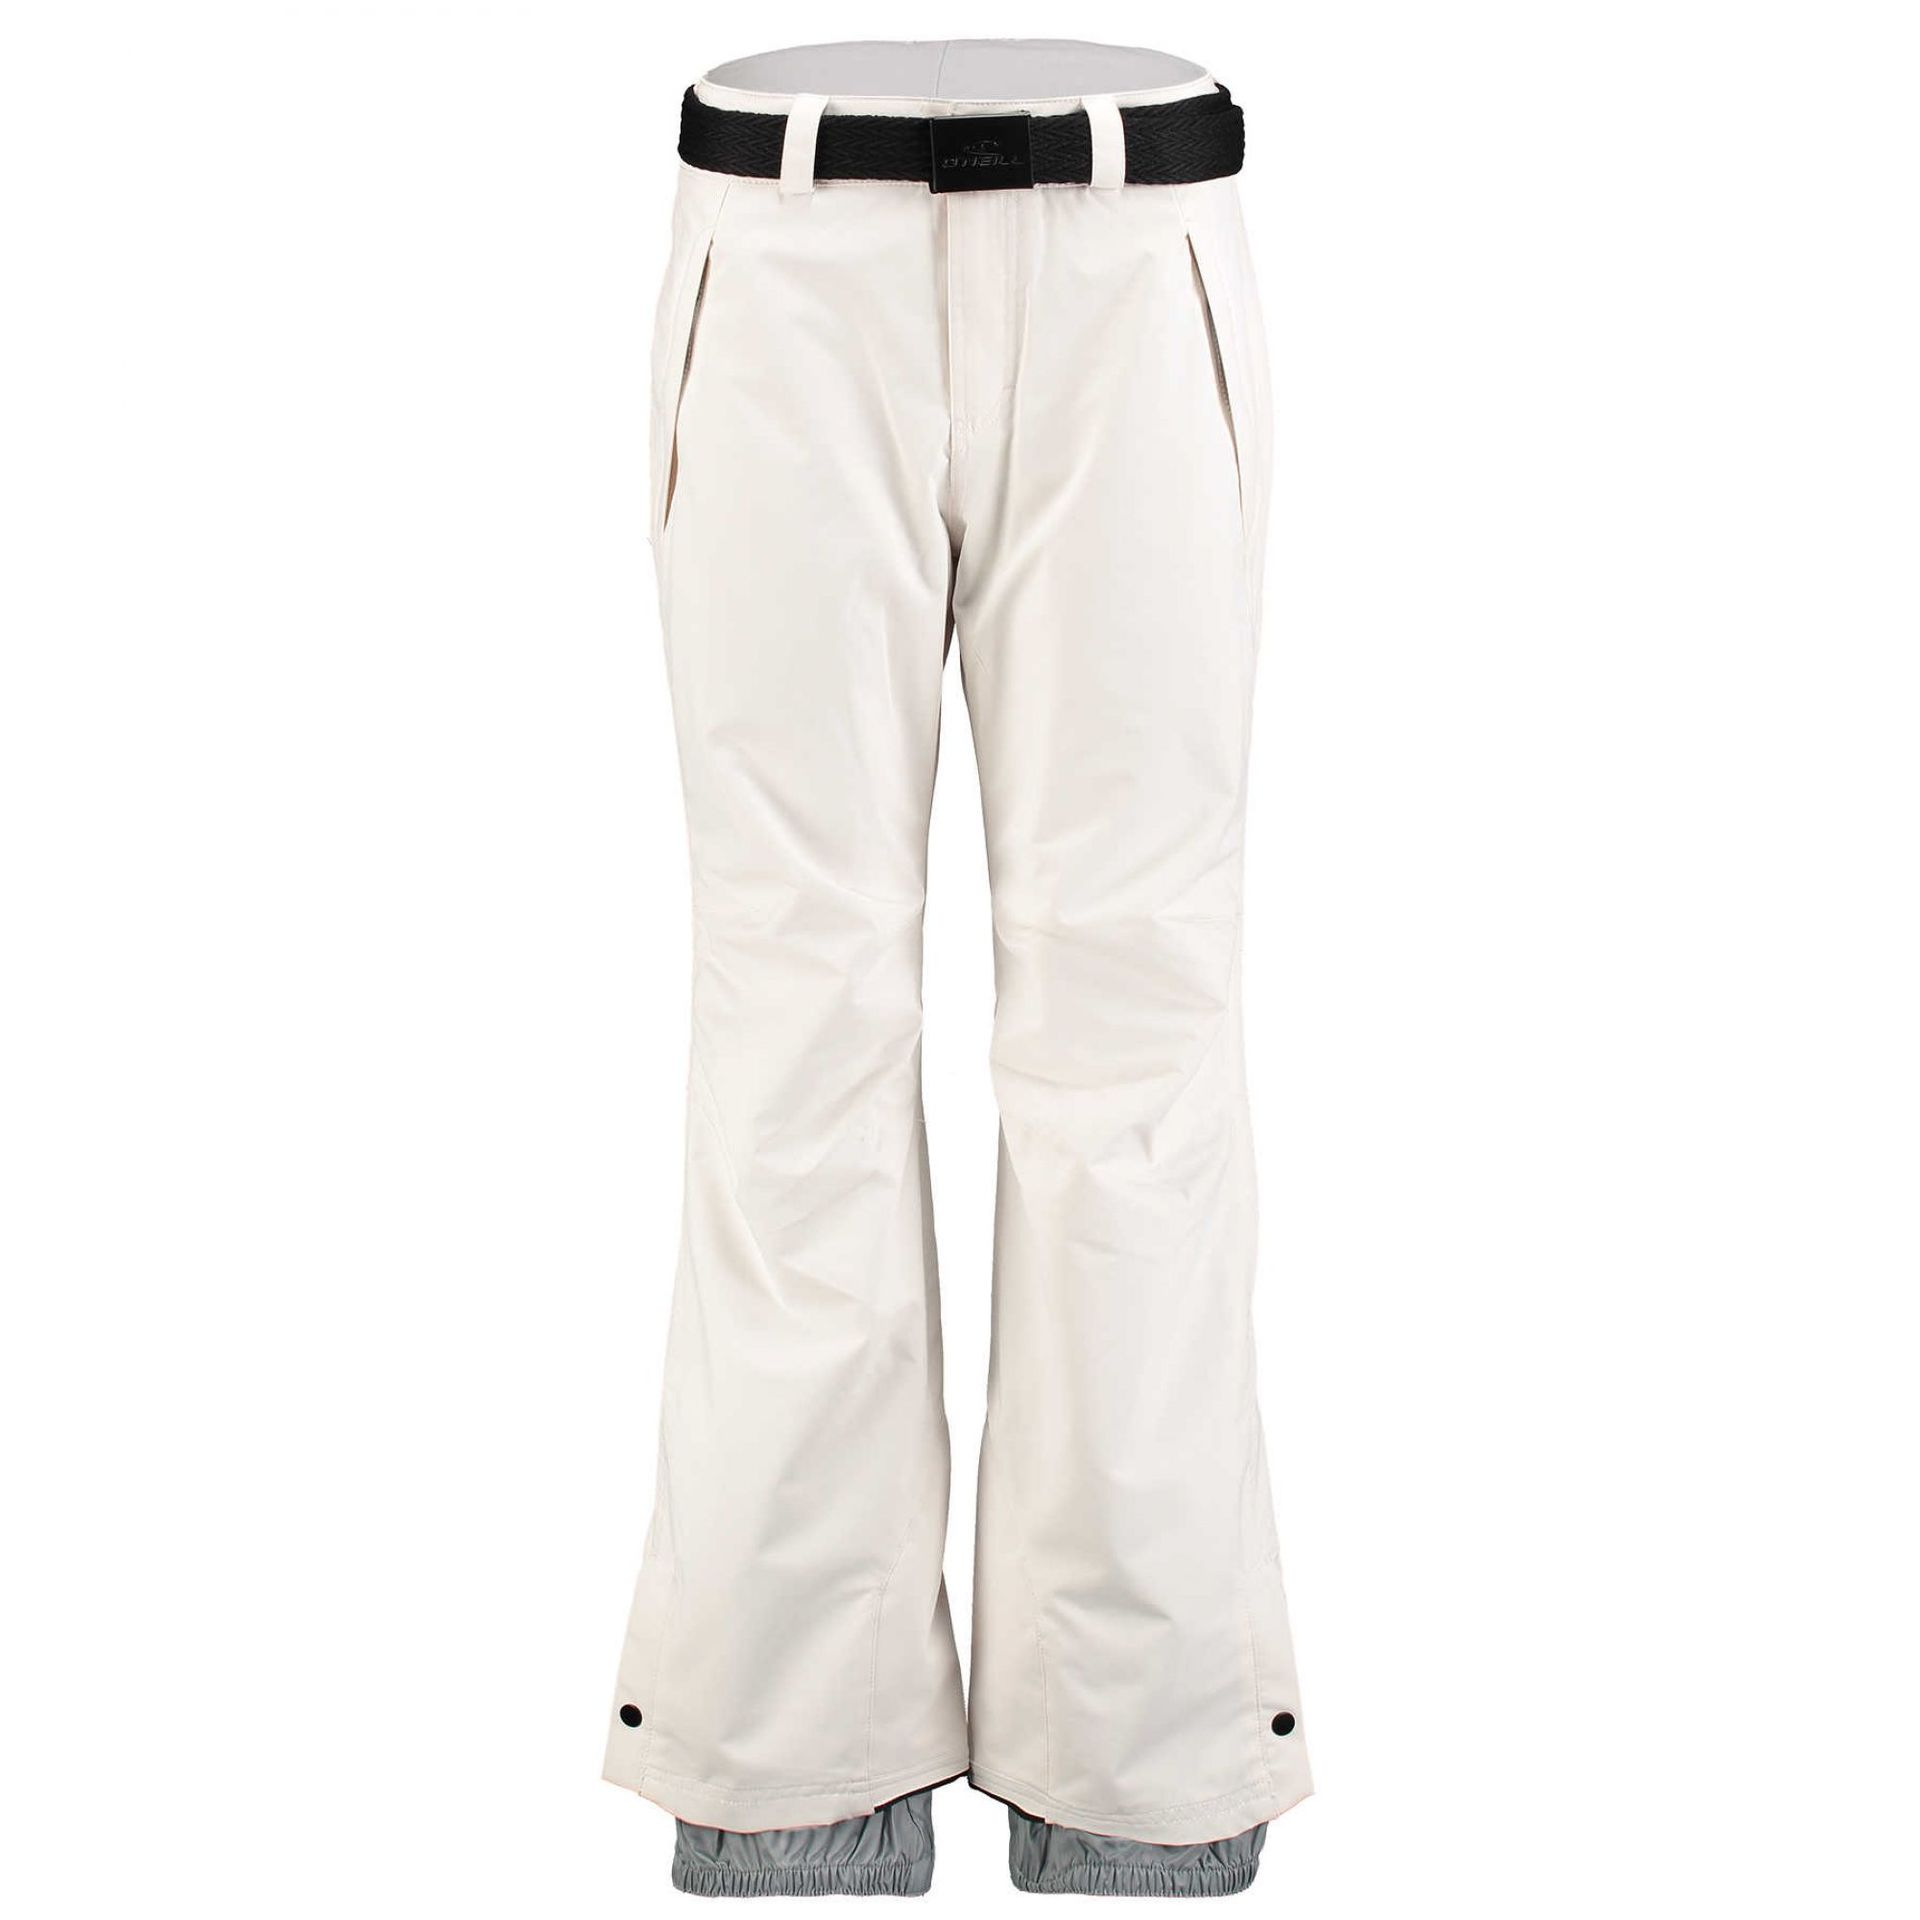 SPODNIE ONEILL STAR PANTS POWDER WHITE